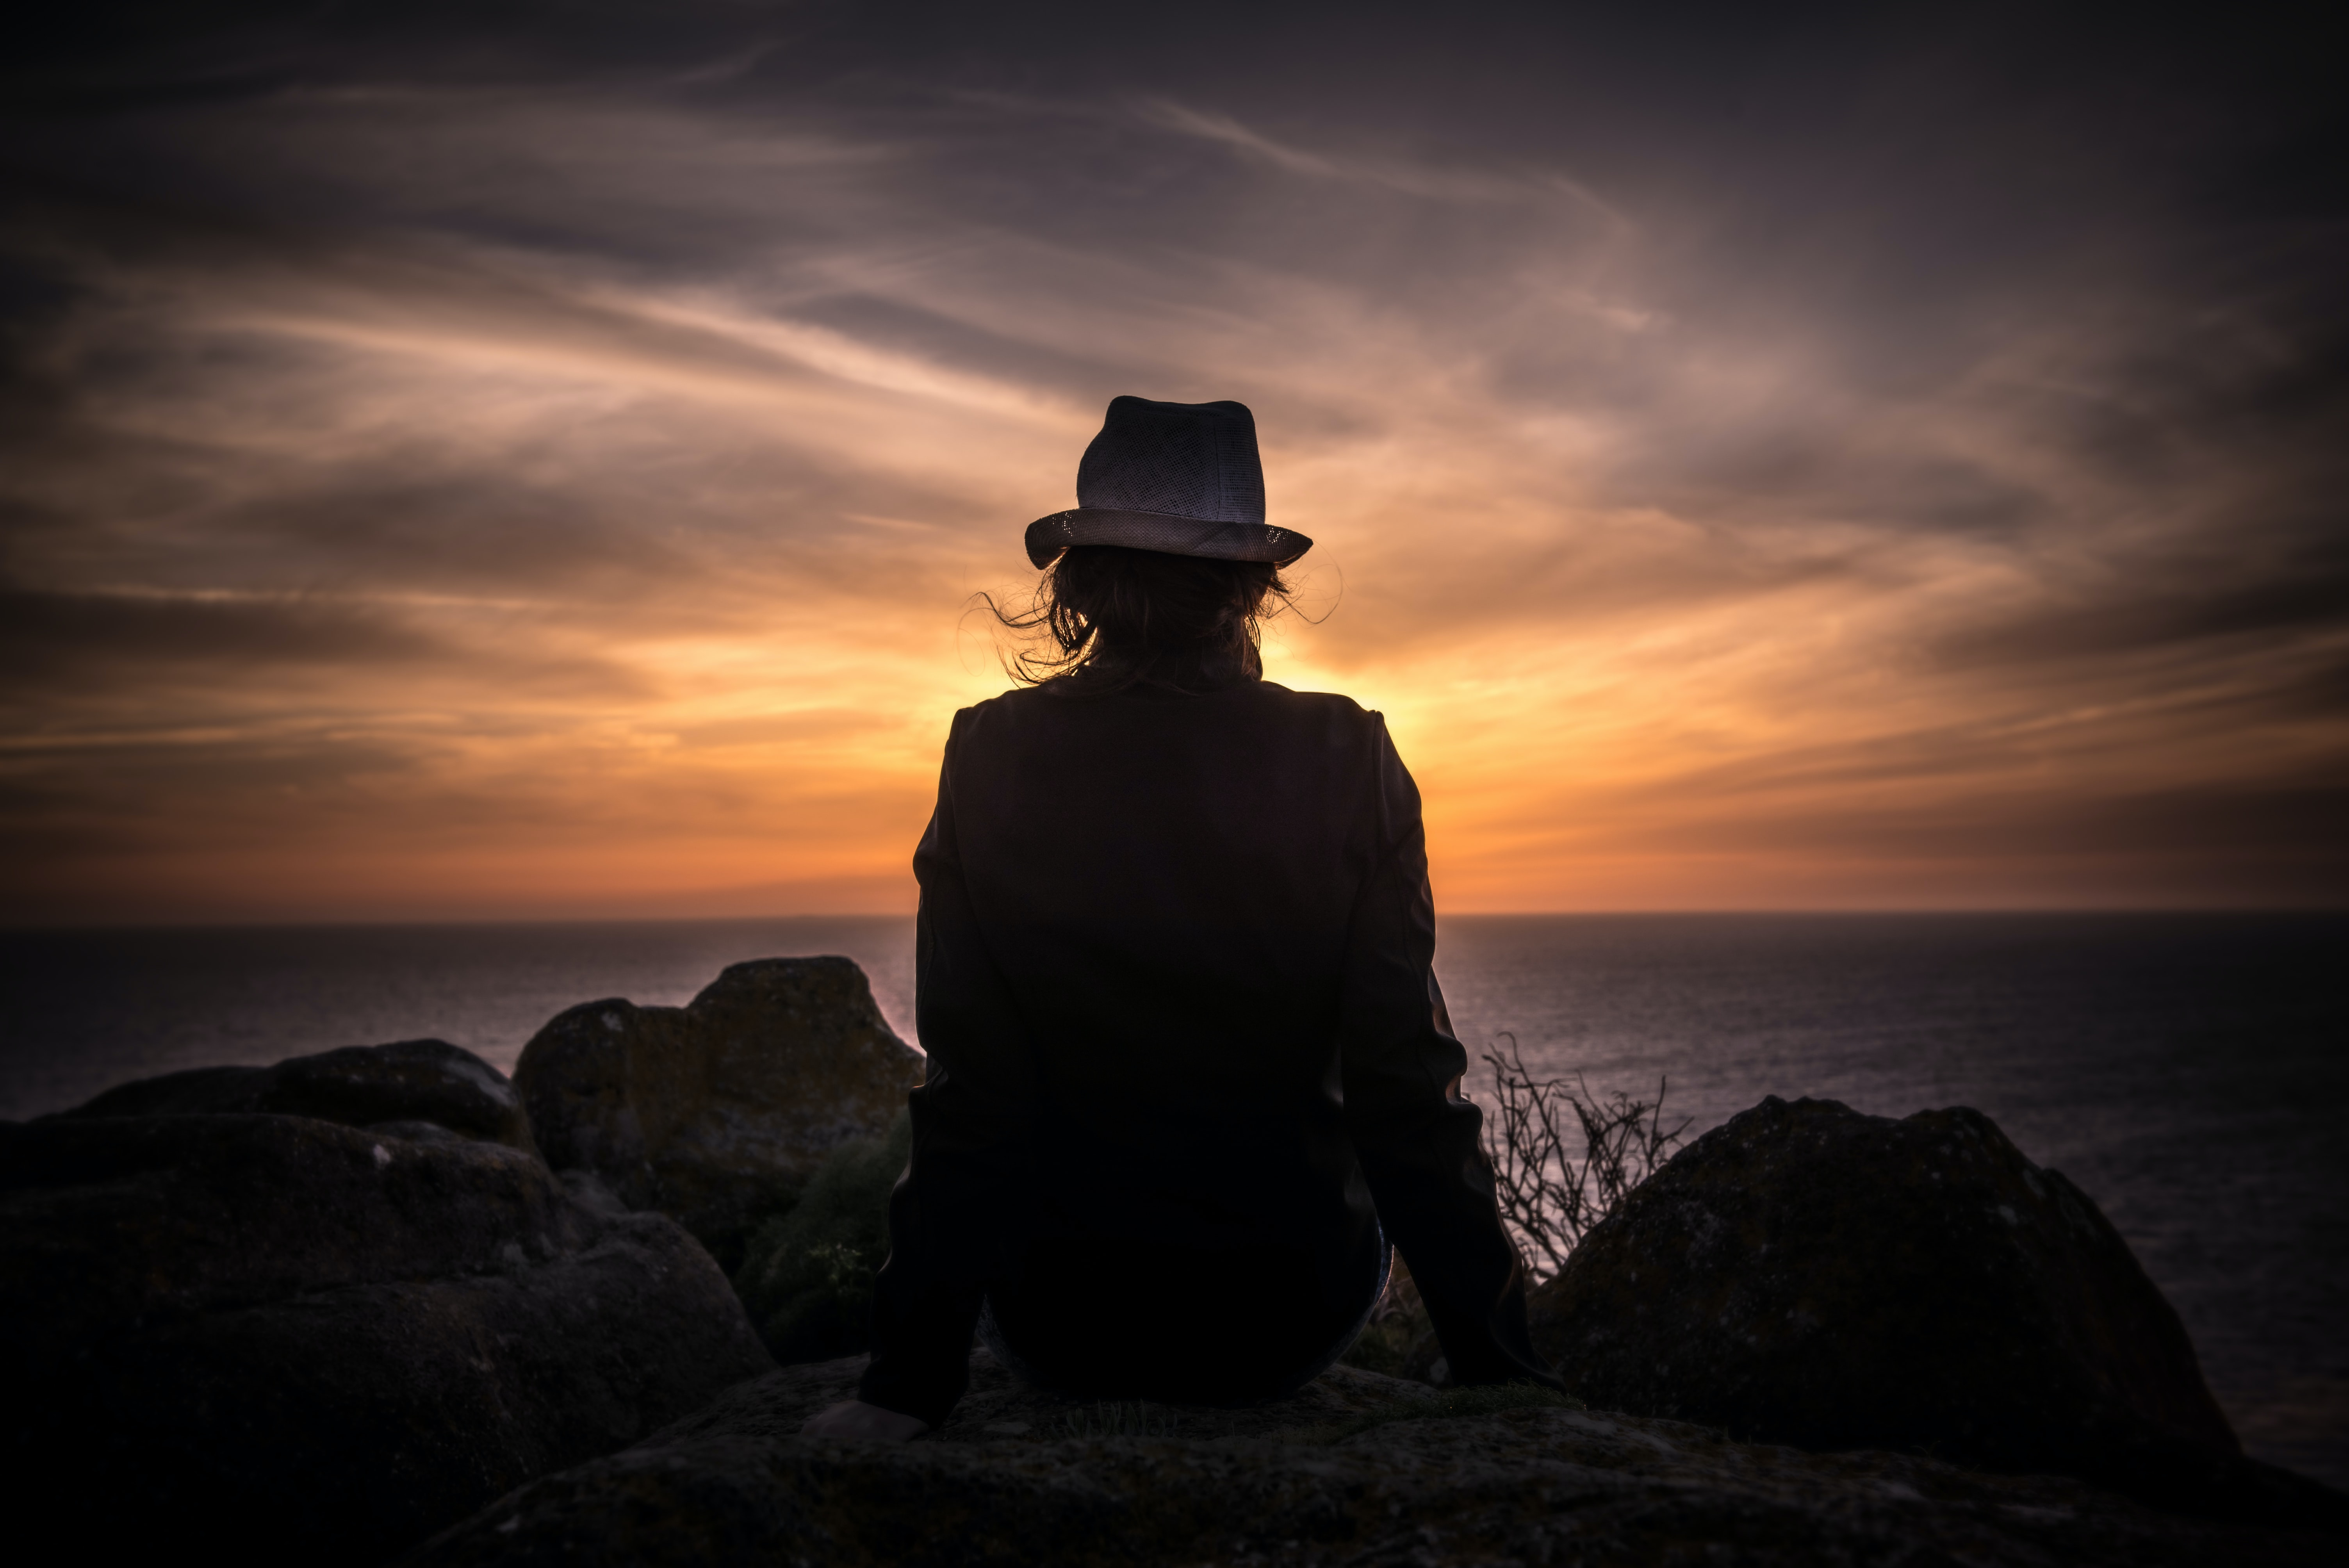 Silhouette of a woman sitting on the edge of a cliff, watching the sunset.